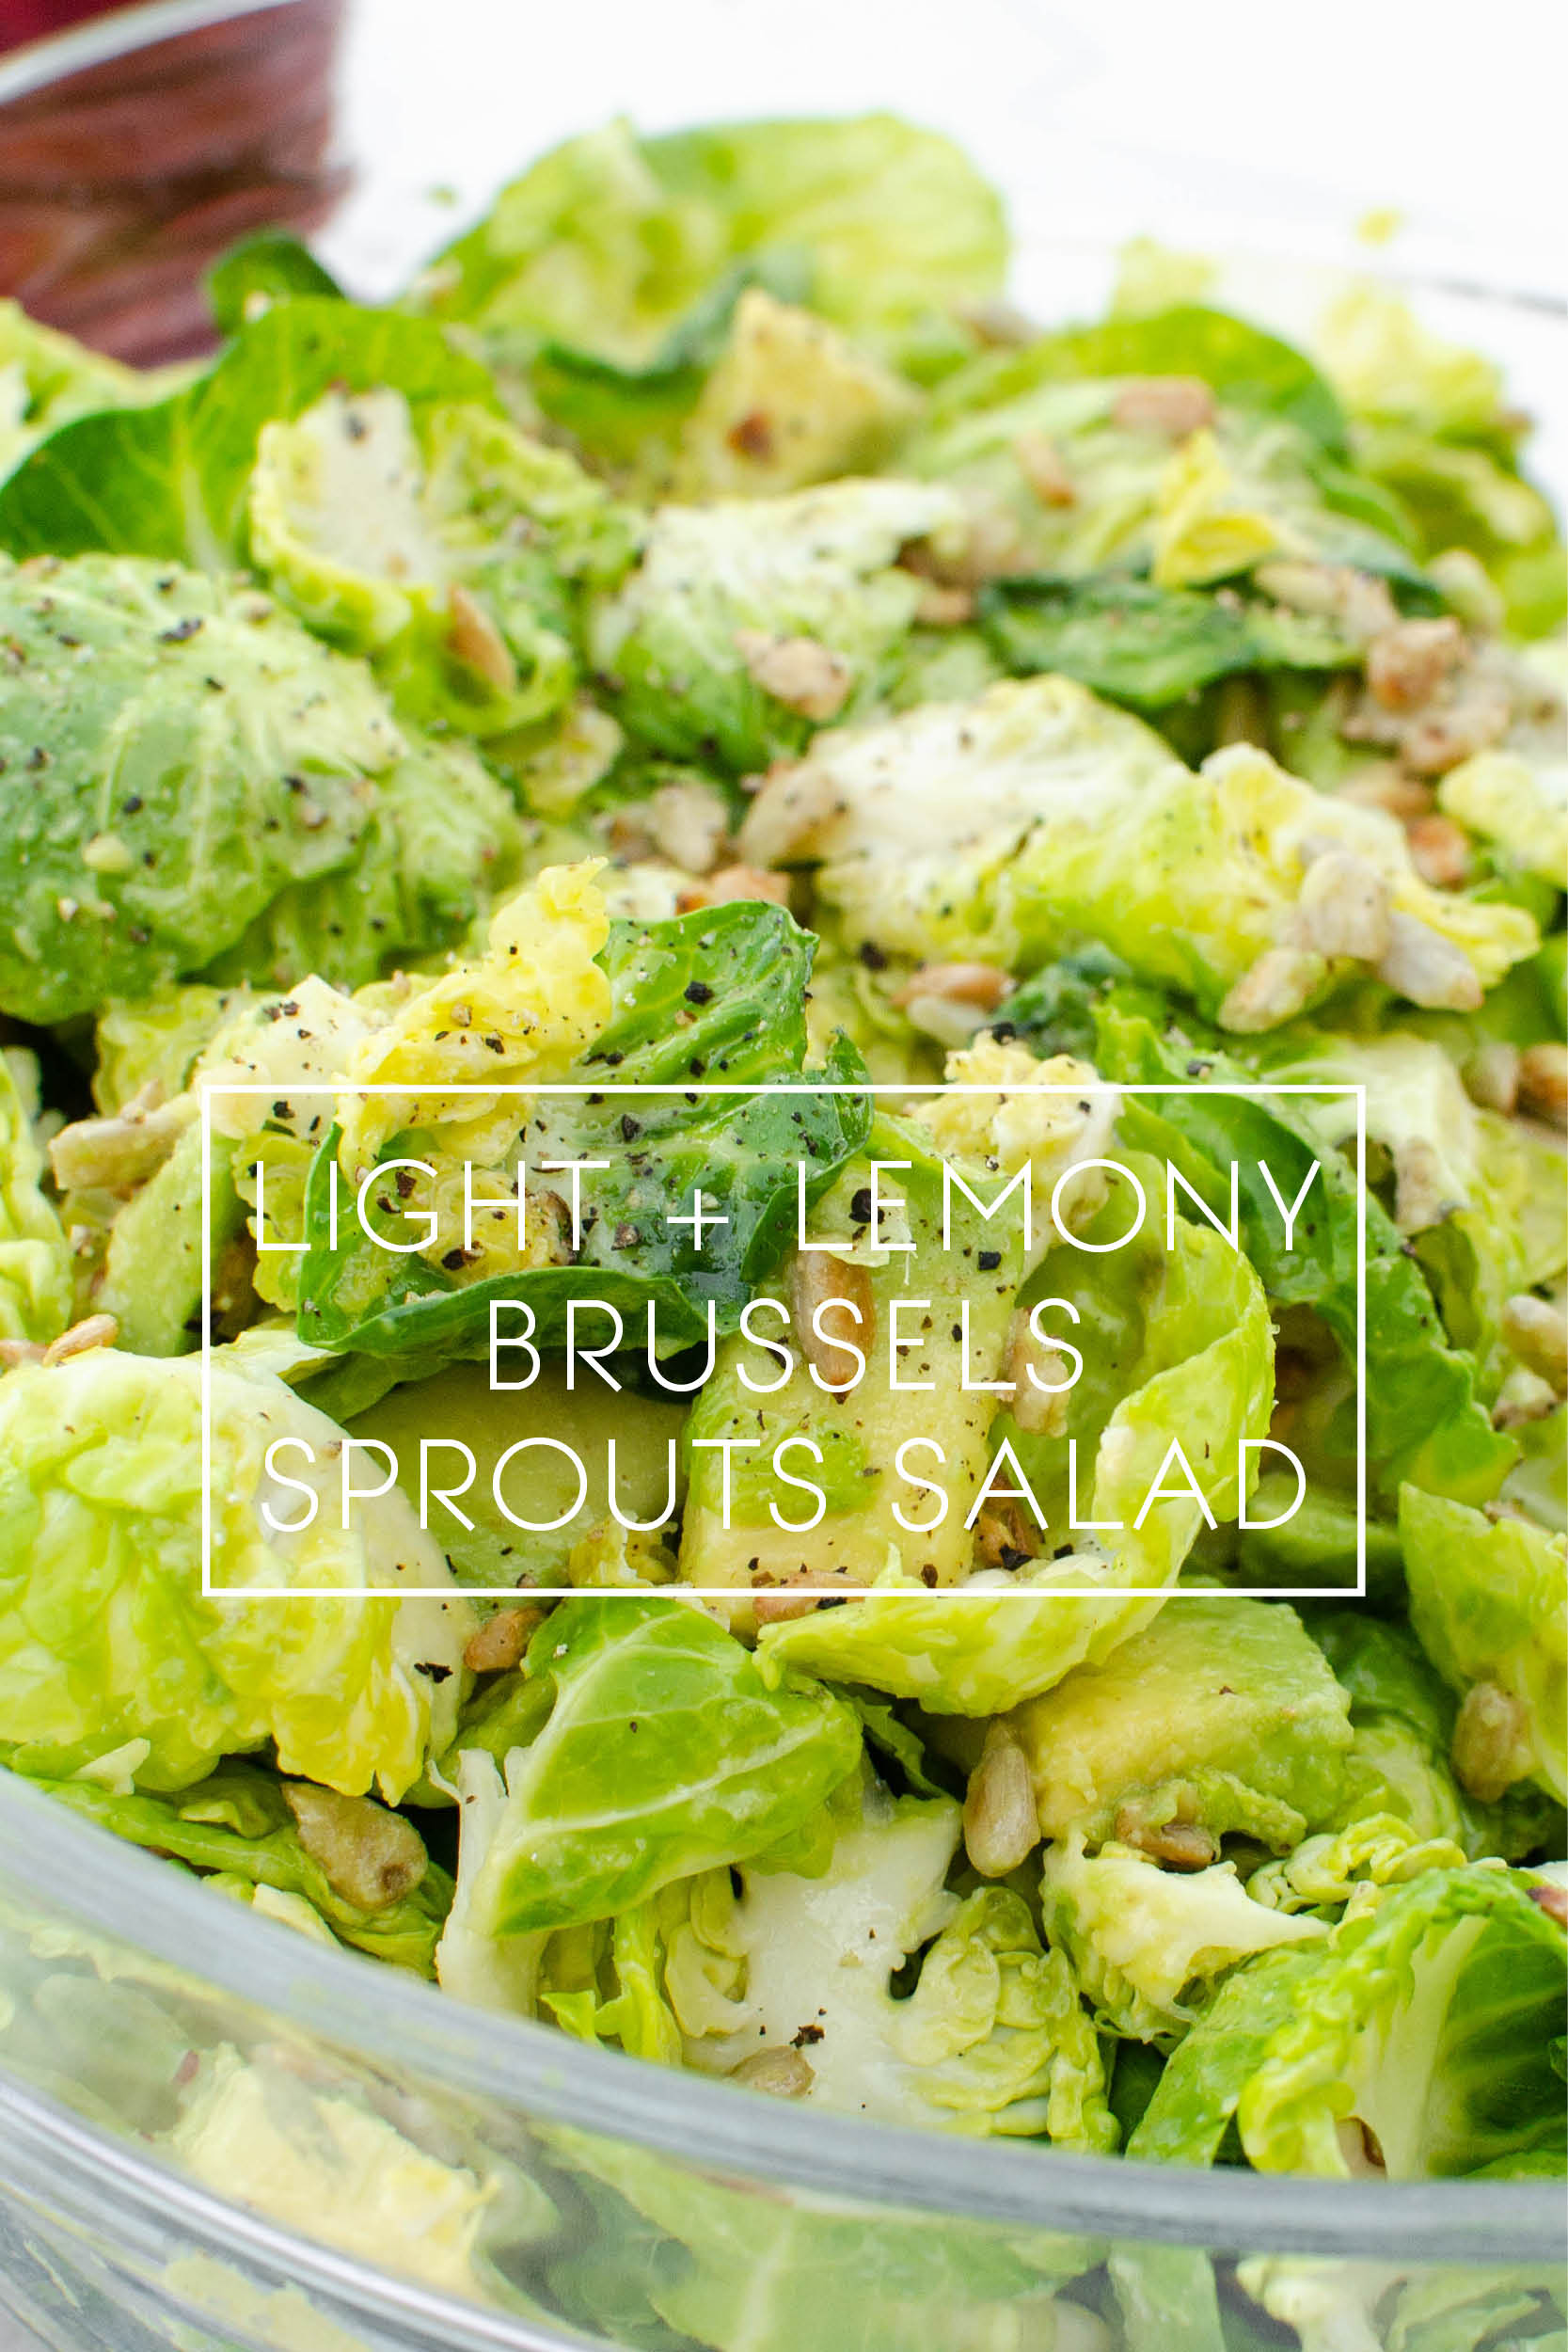 Gluten Free Vegan Light and Lemony Brussels Sprouts Salad 1